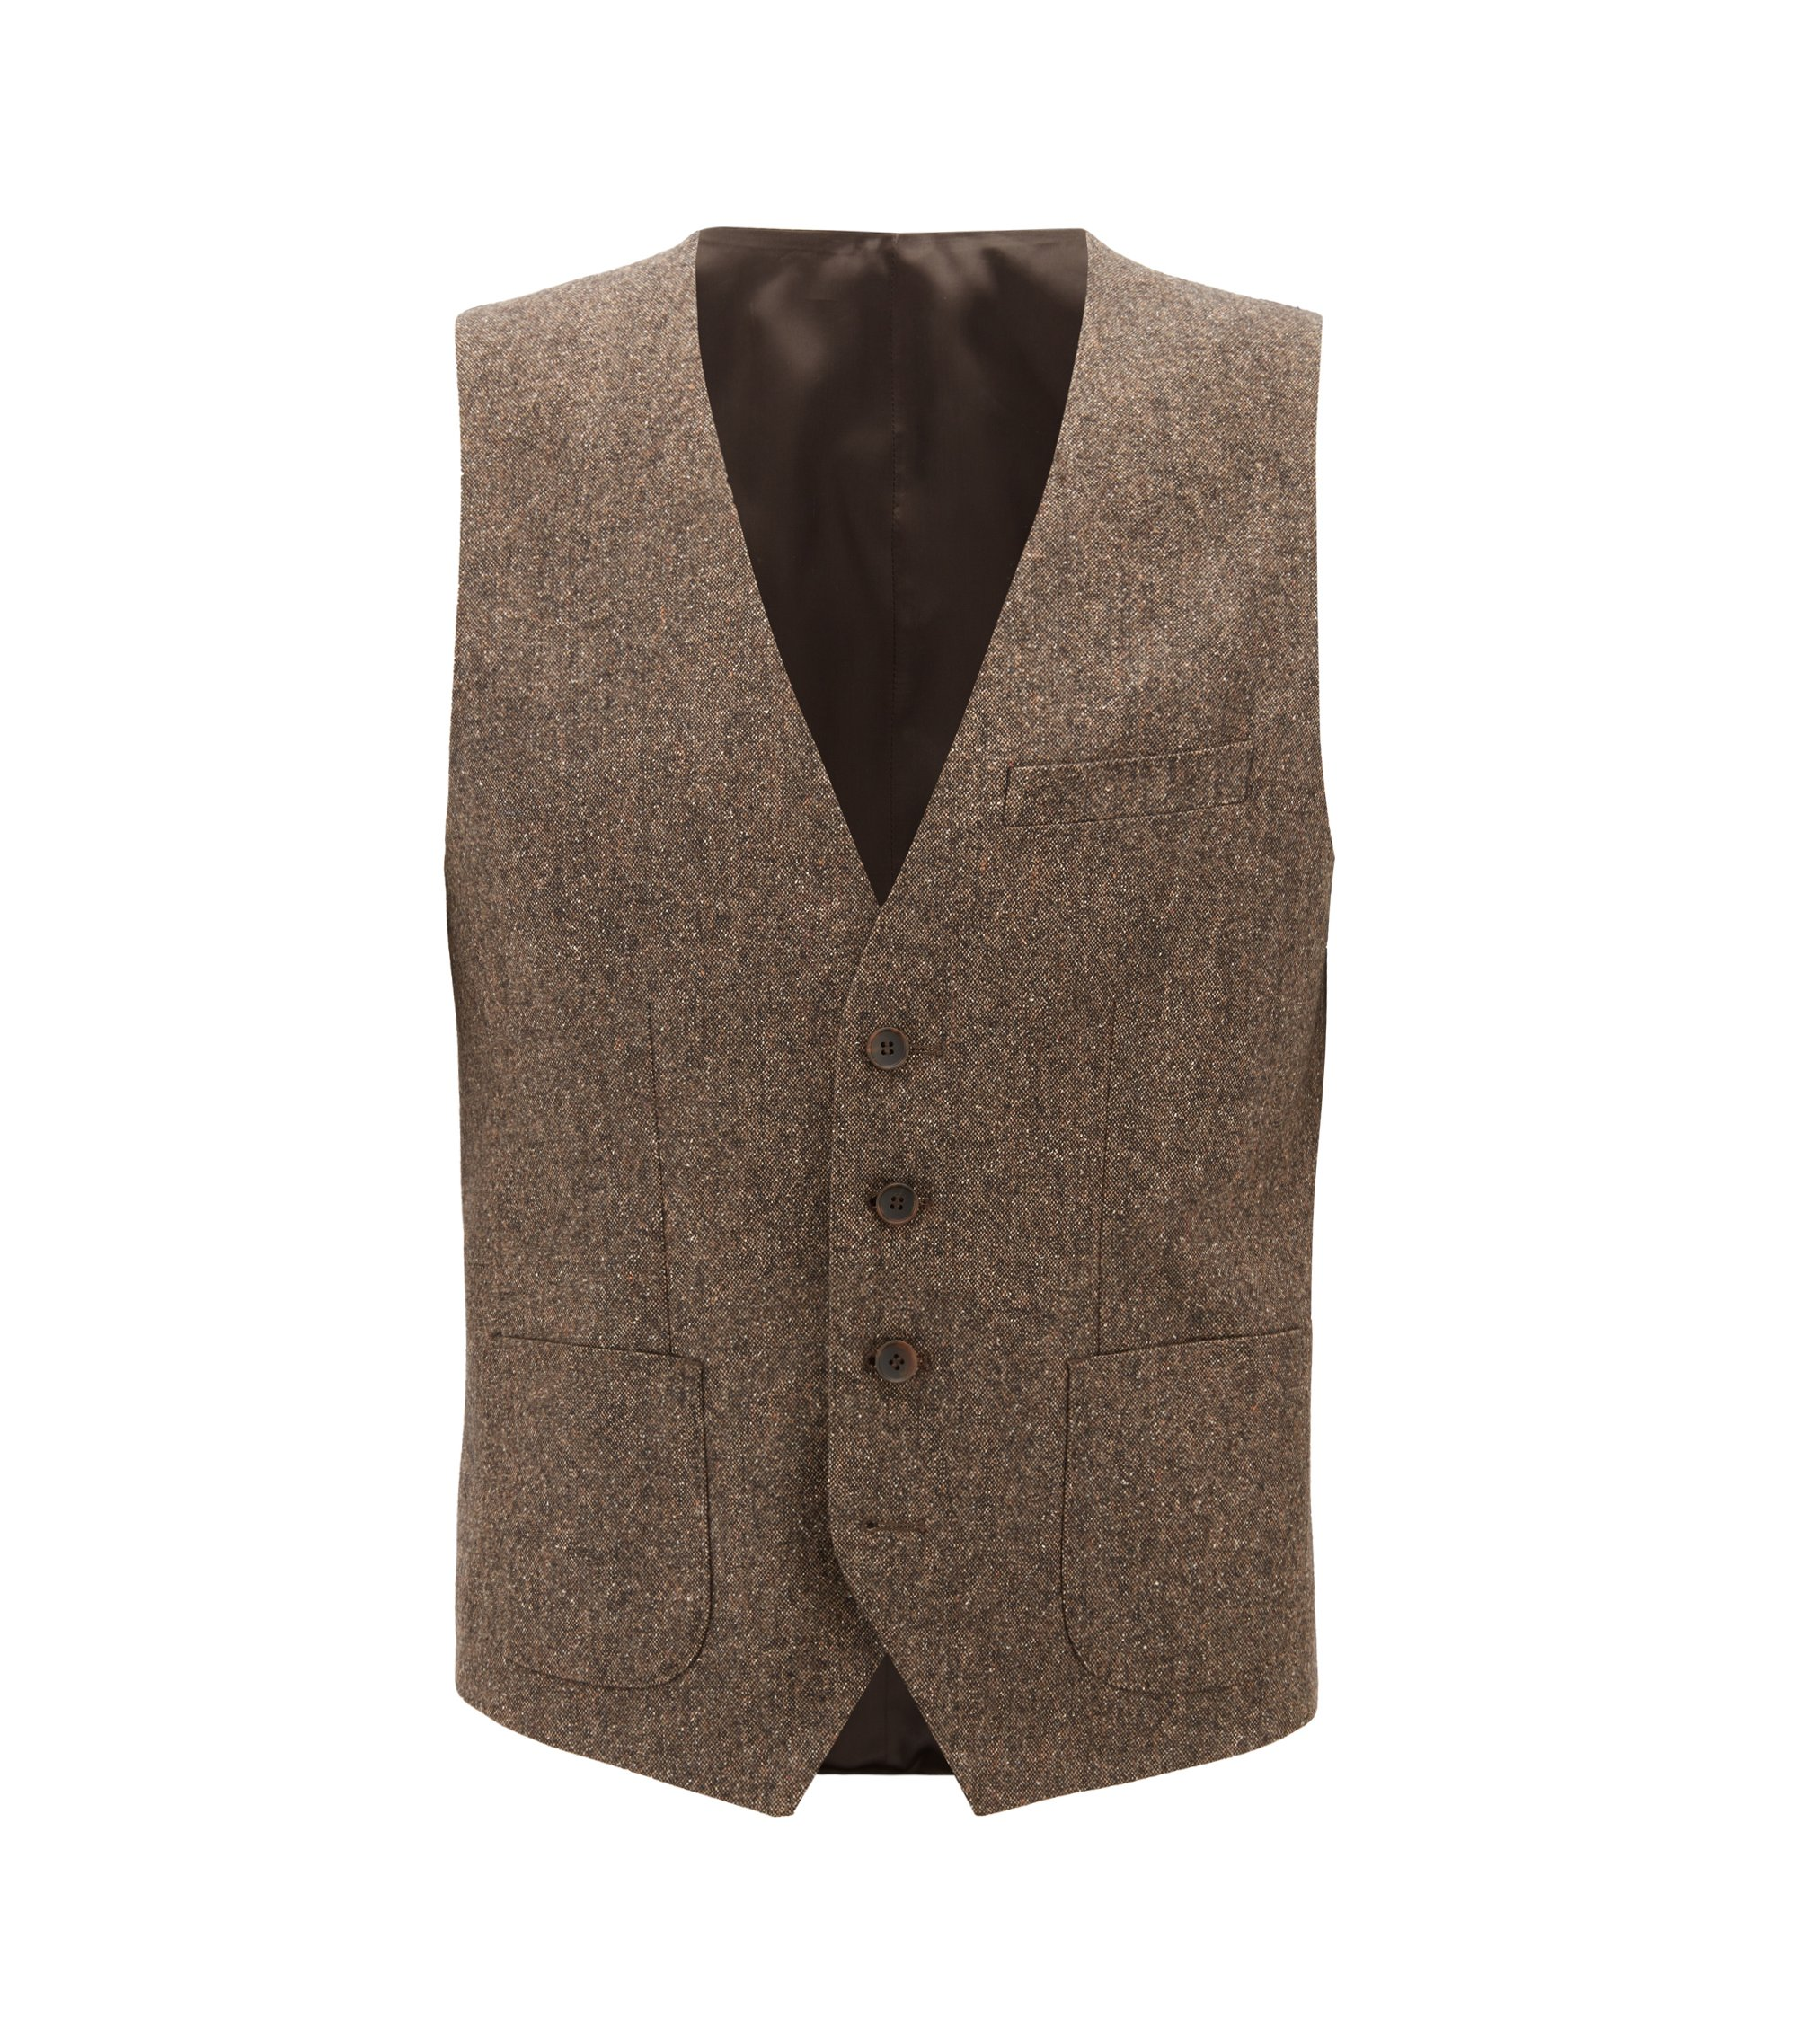 Gilet slim fit in tweed di misto lana vergine, Marrone chiaro